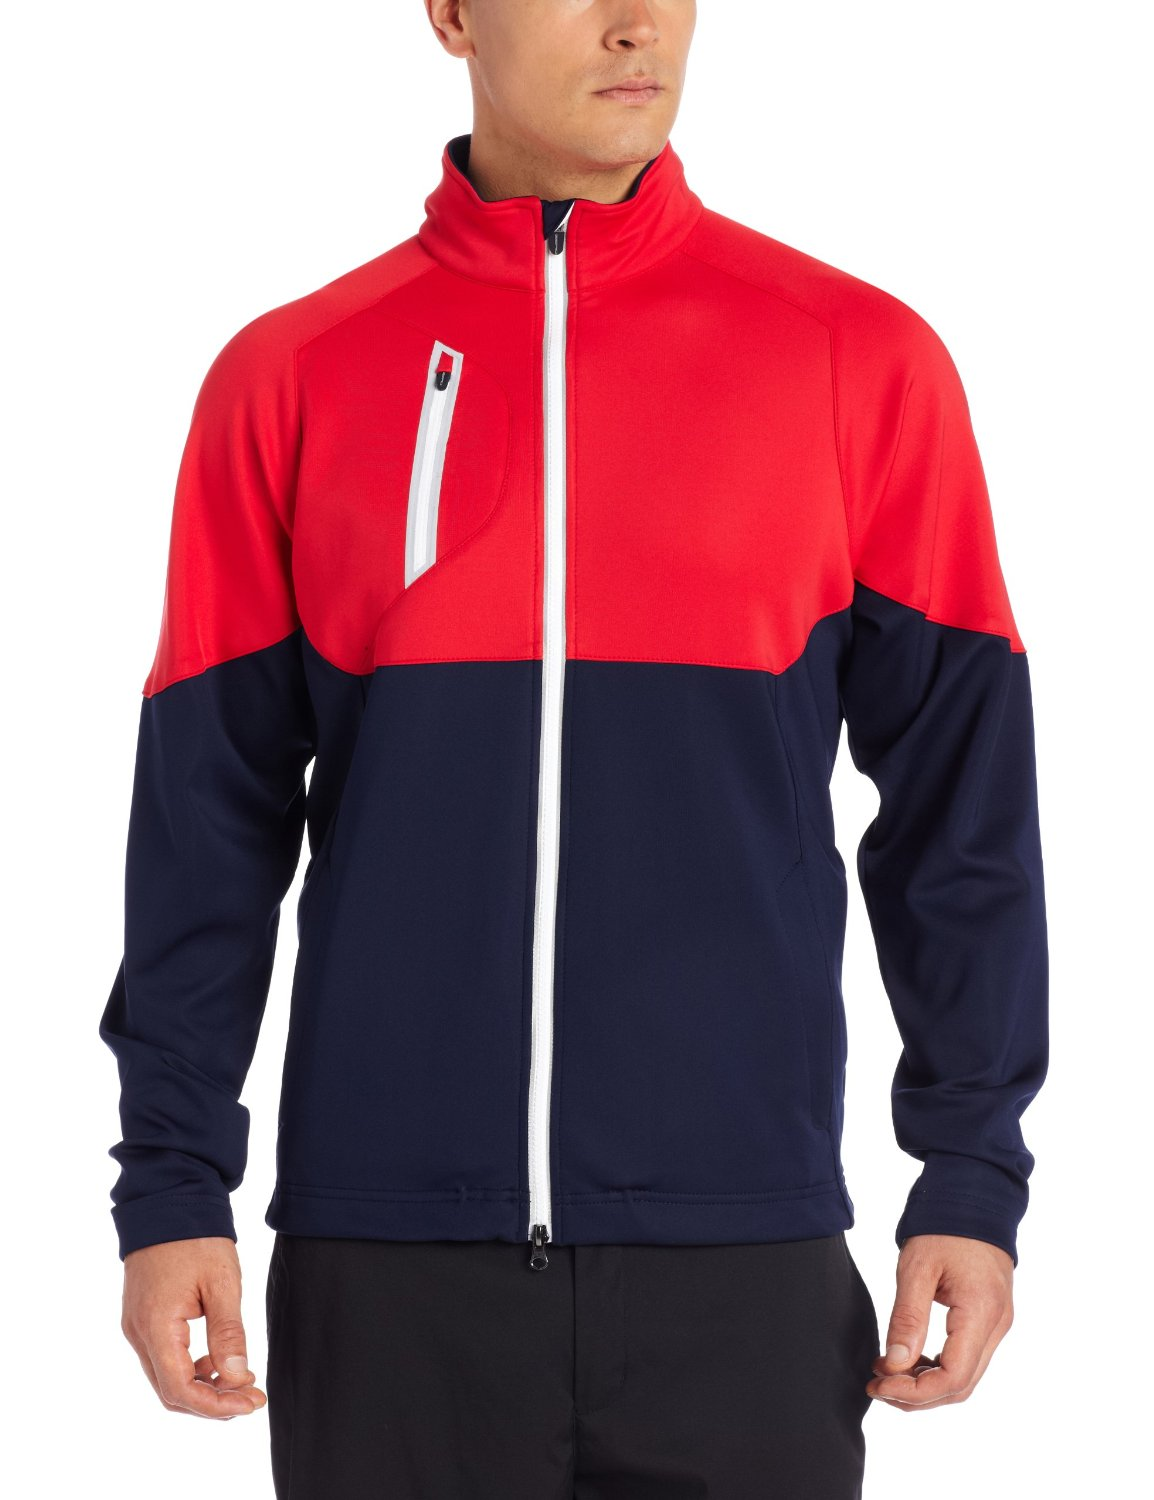 Mens Zero Restriction Full Zip Golf Jackets